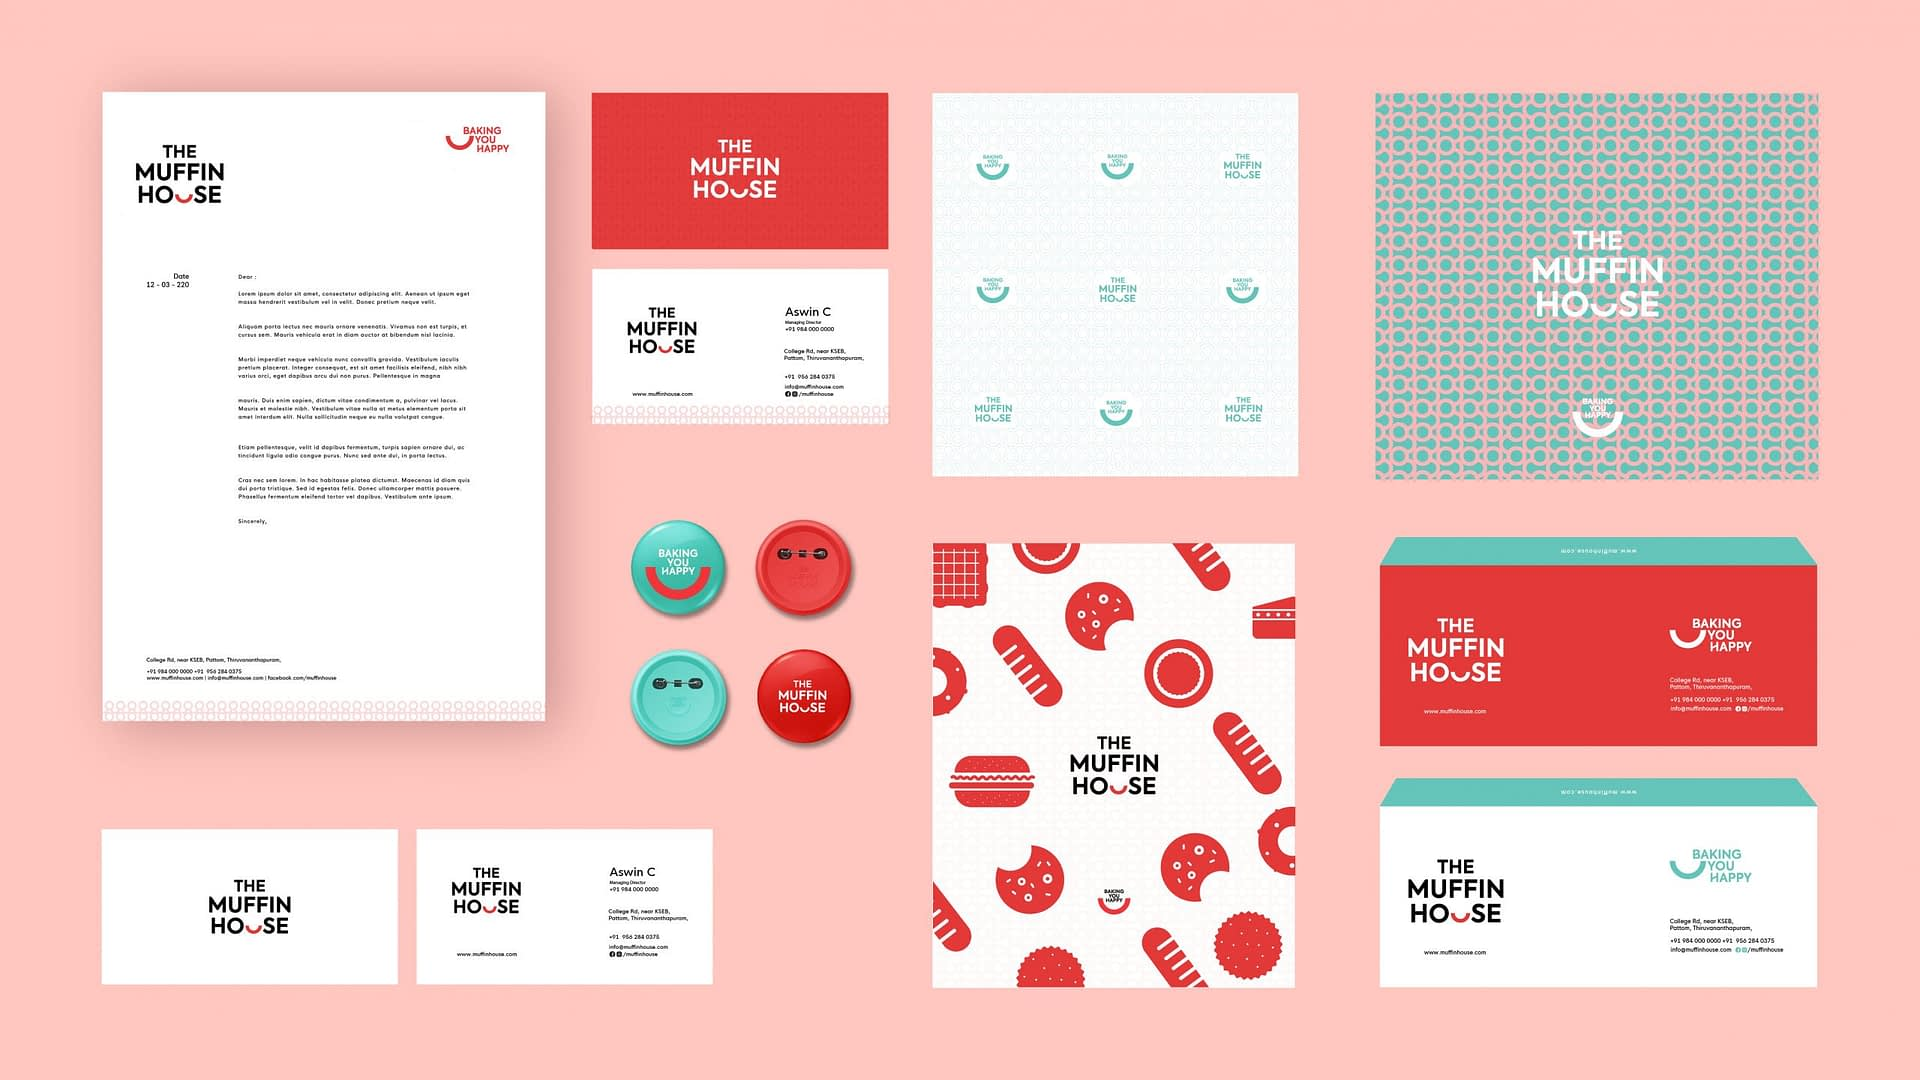 THE MUFFIN HOUSE BRANDING